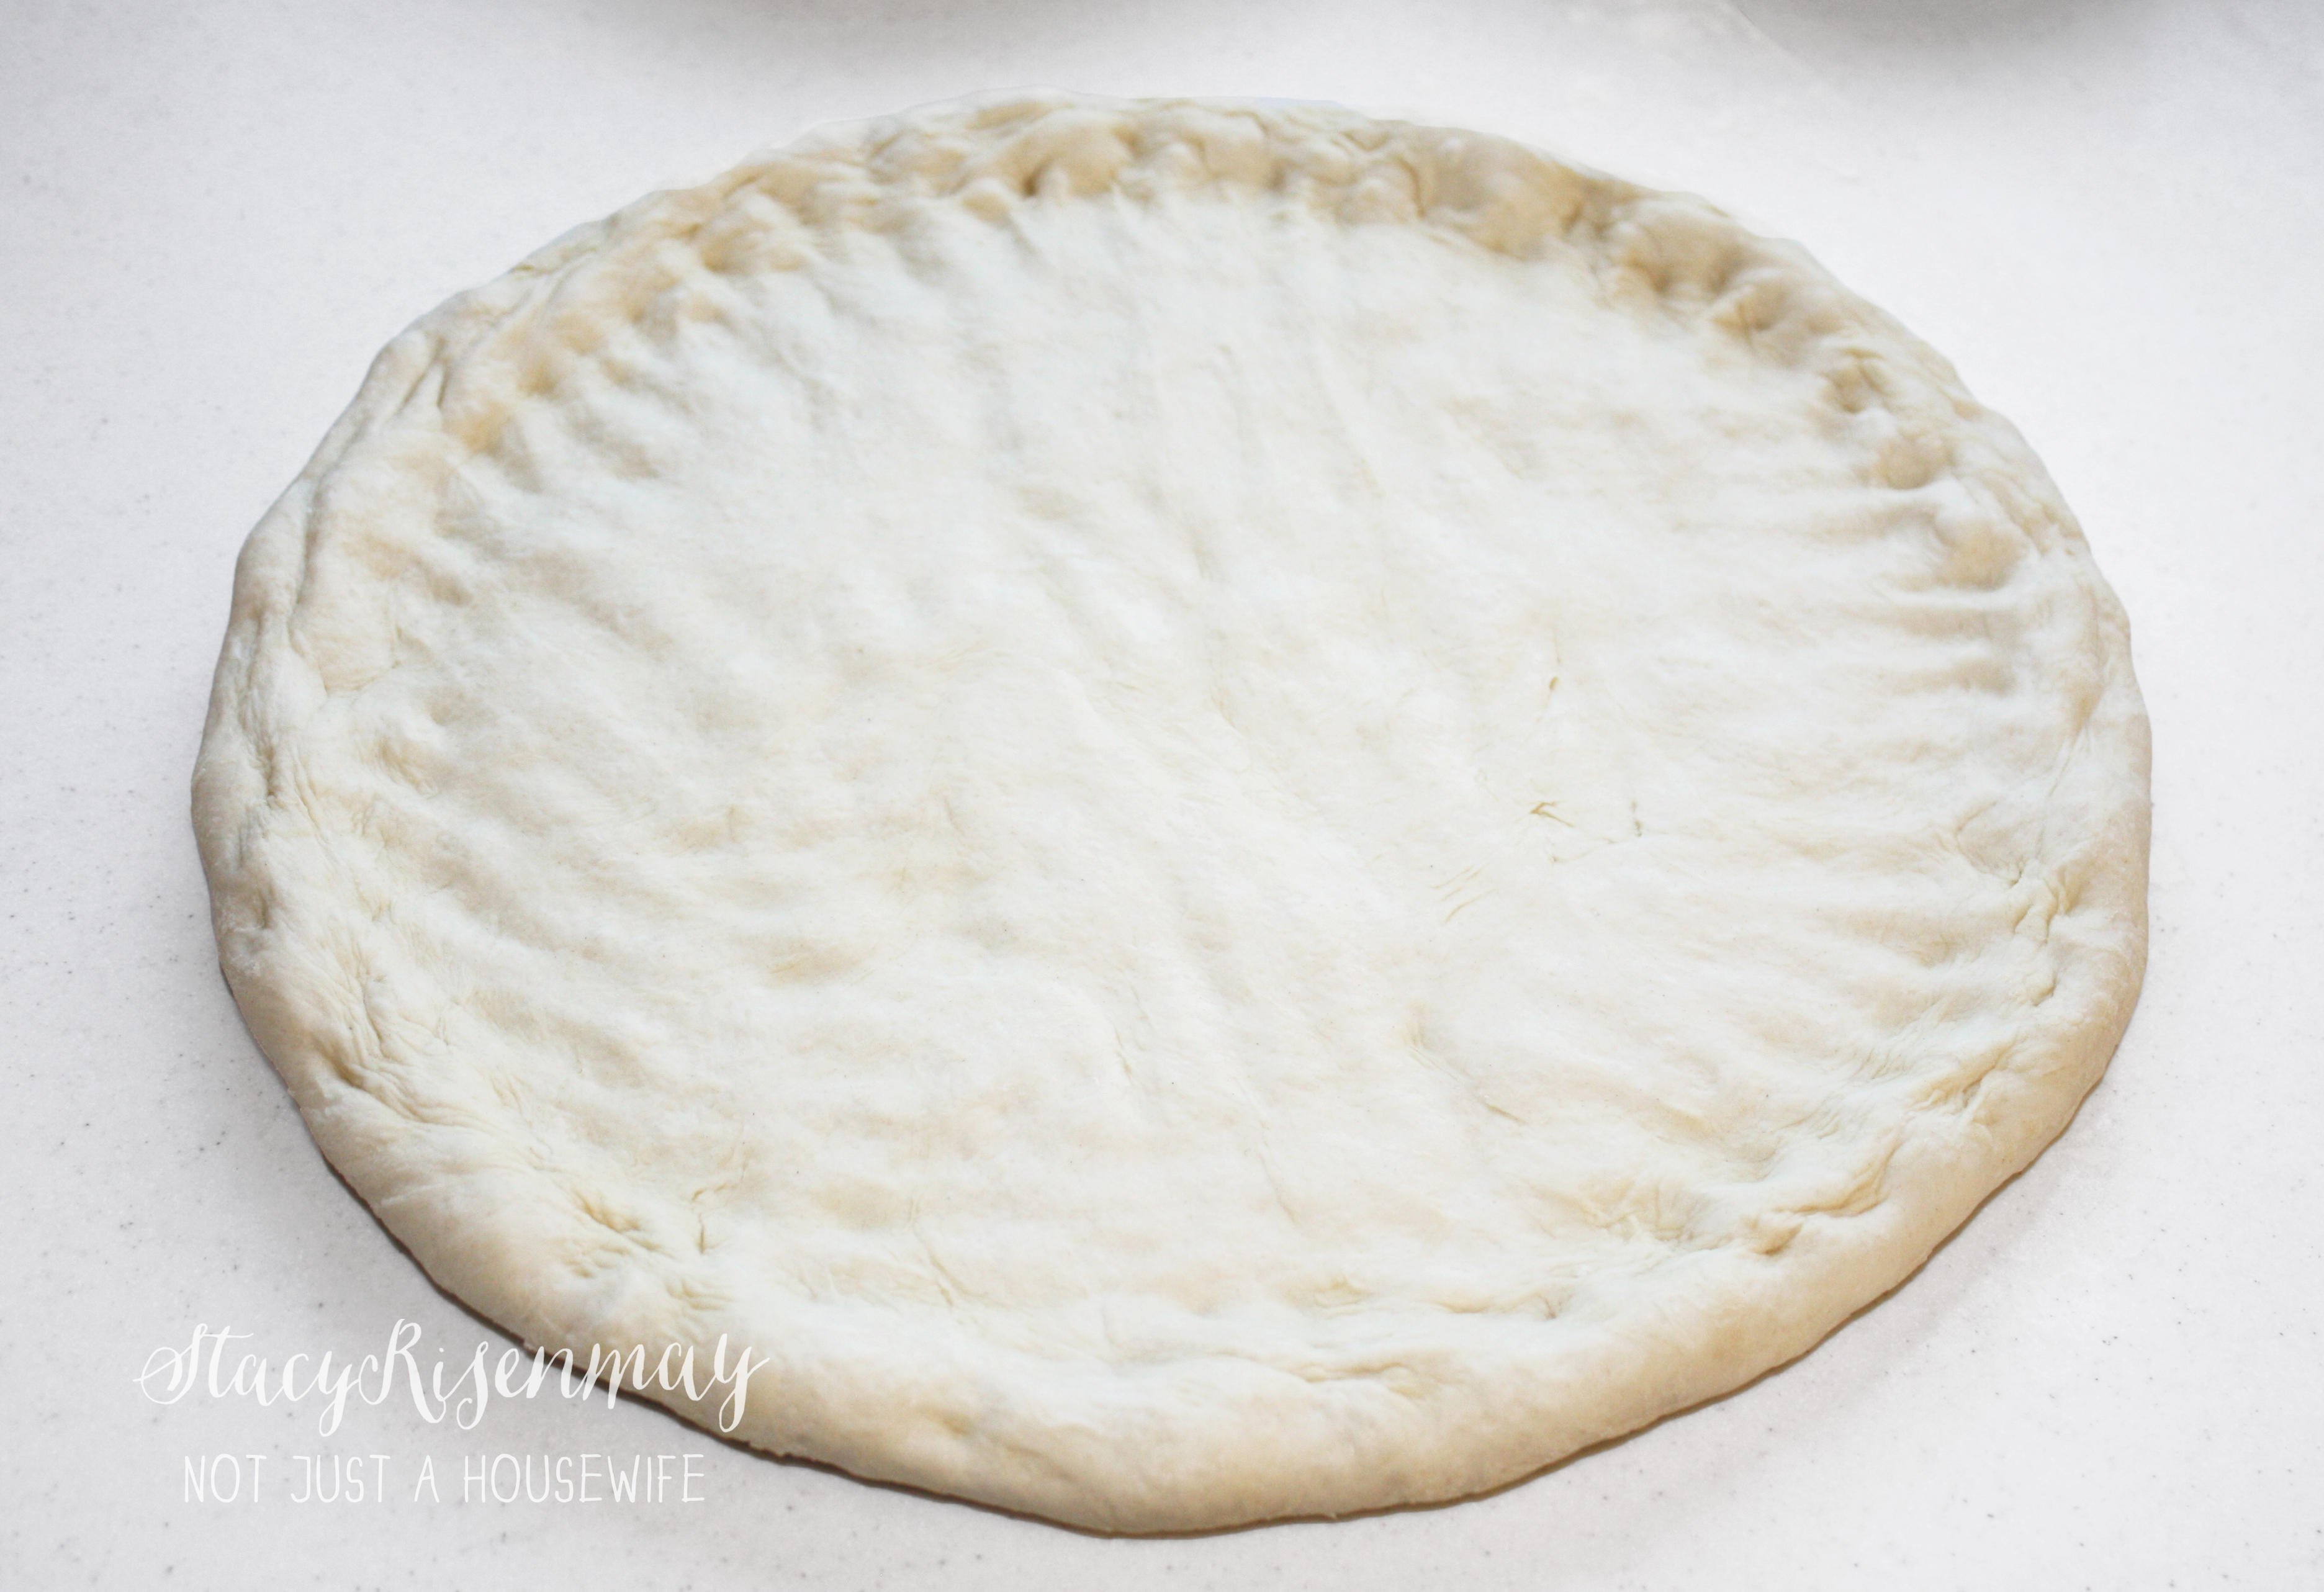 ... pizza dough best bas i c pizza dough easy whole wheat pizza dough 1